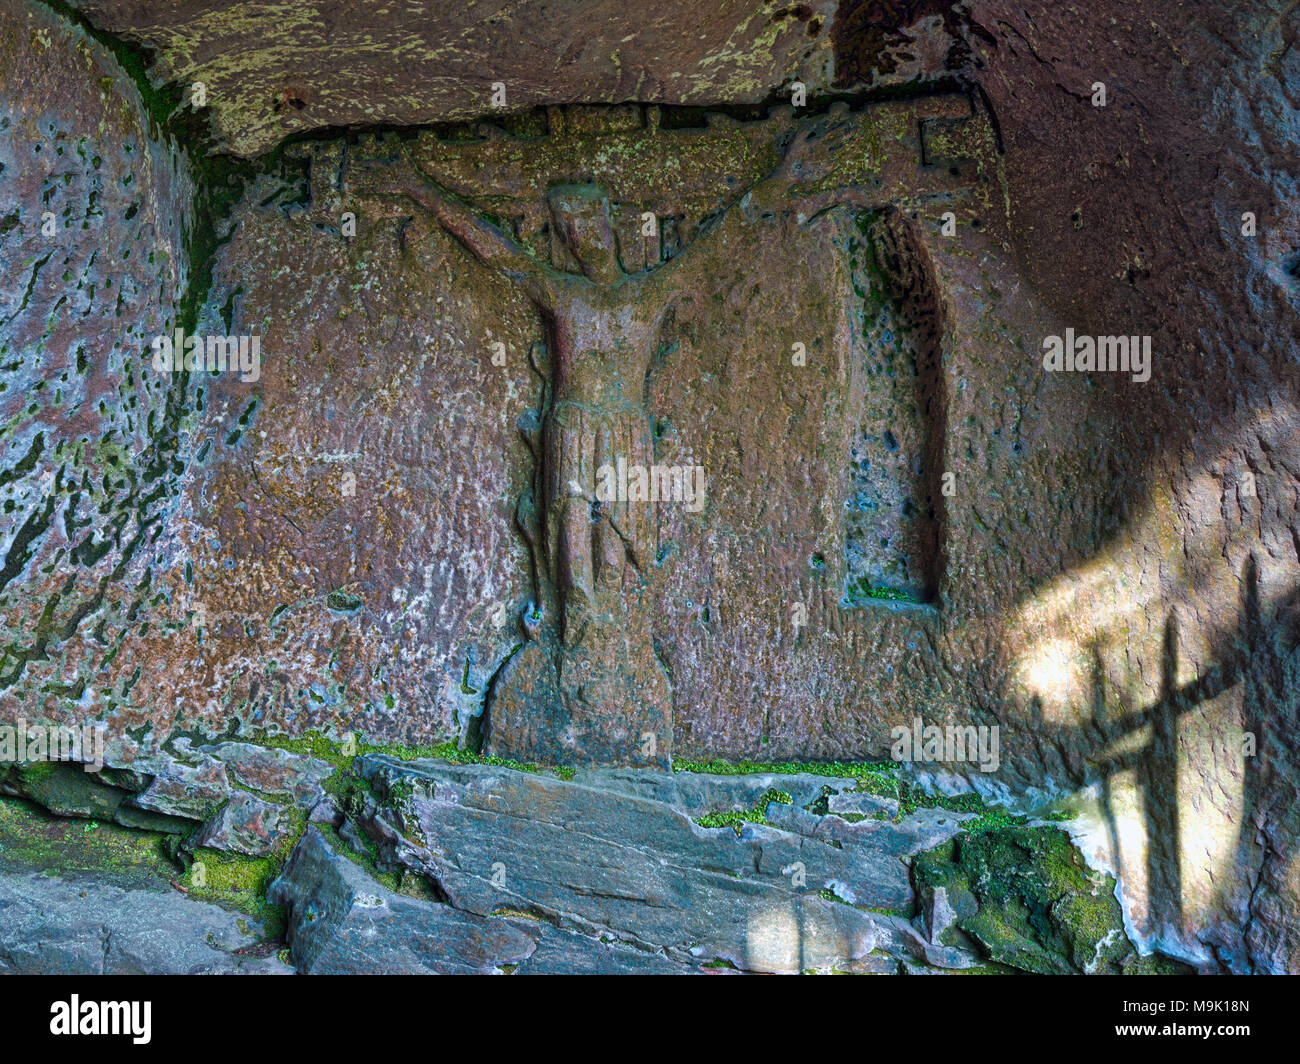 14th century Hermit's Cave at the base of Cratcliffe Rocks, near the village of Elton, Derbyshire, within a four feet high stone carved Jesus Christ - Stock Image